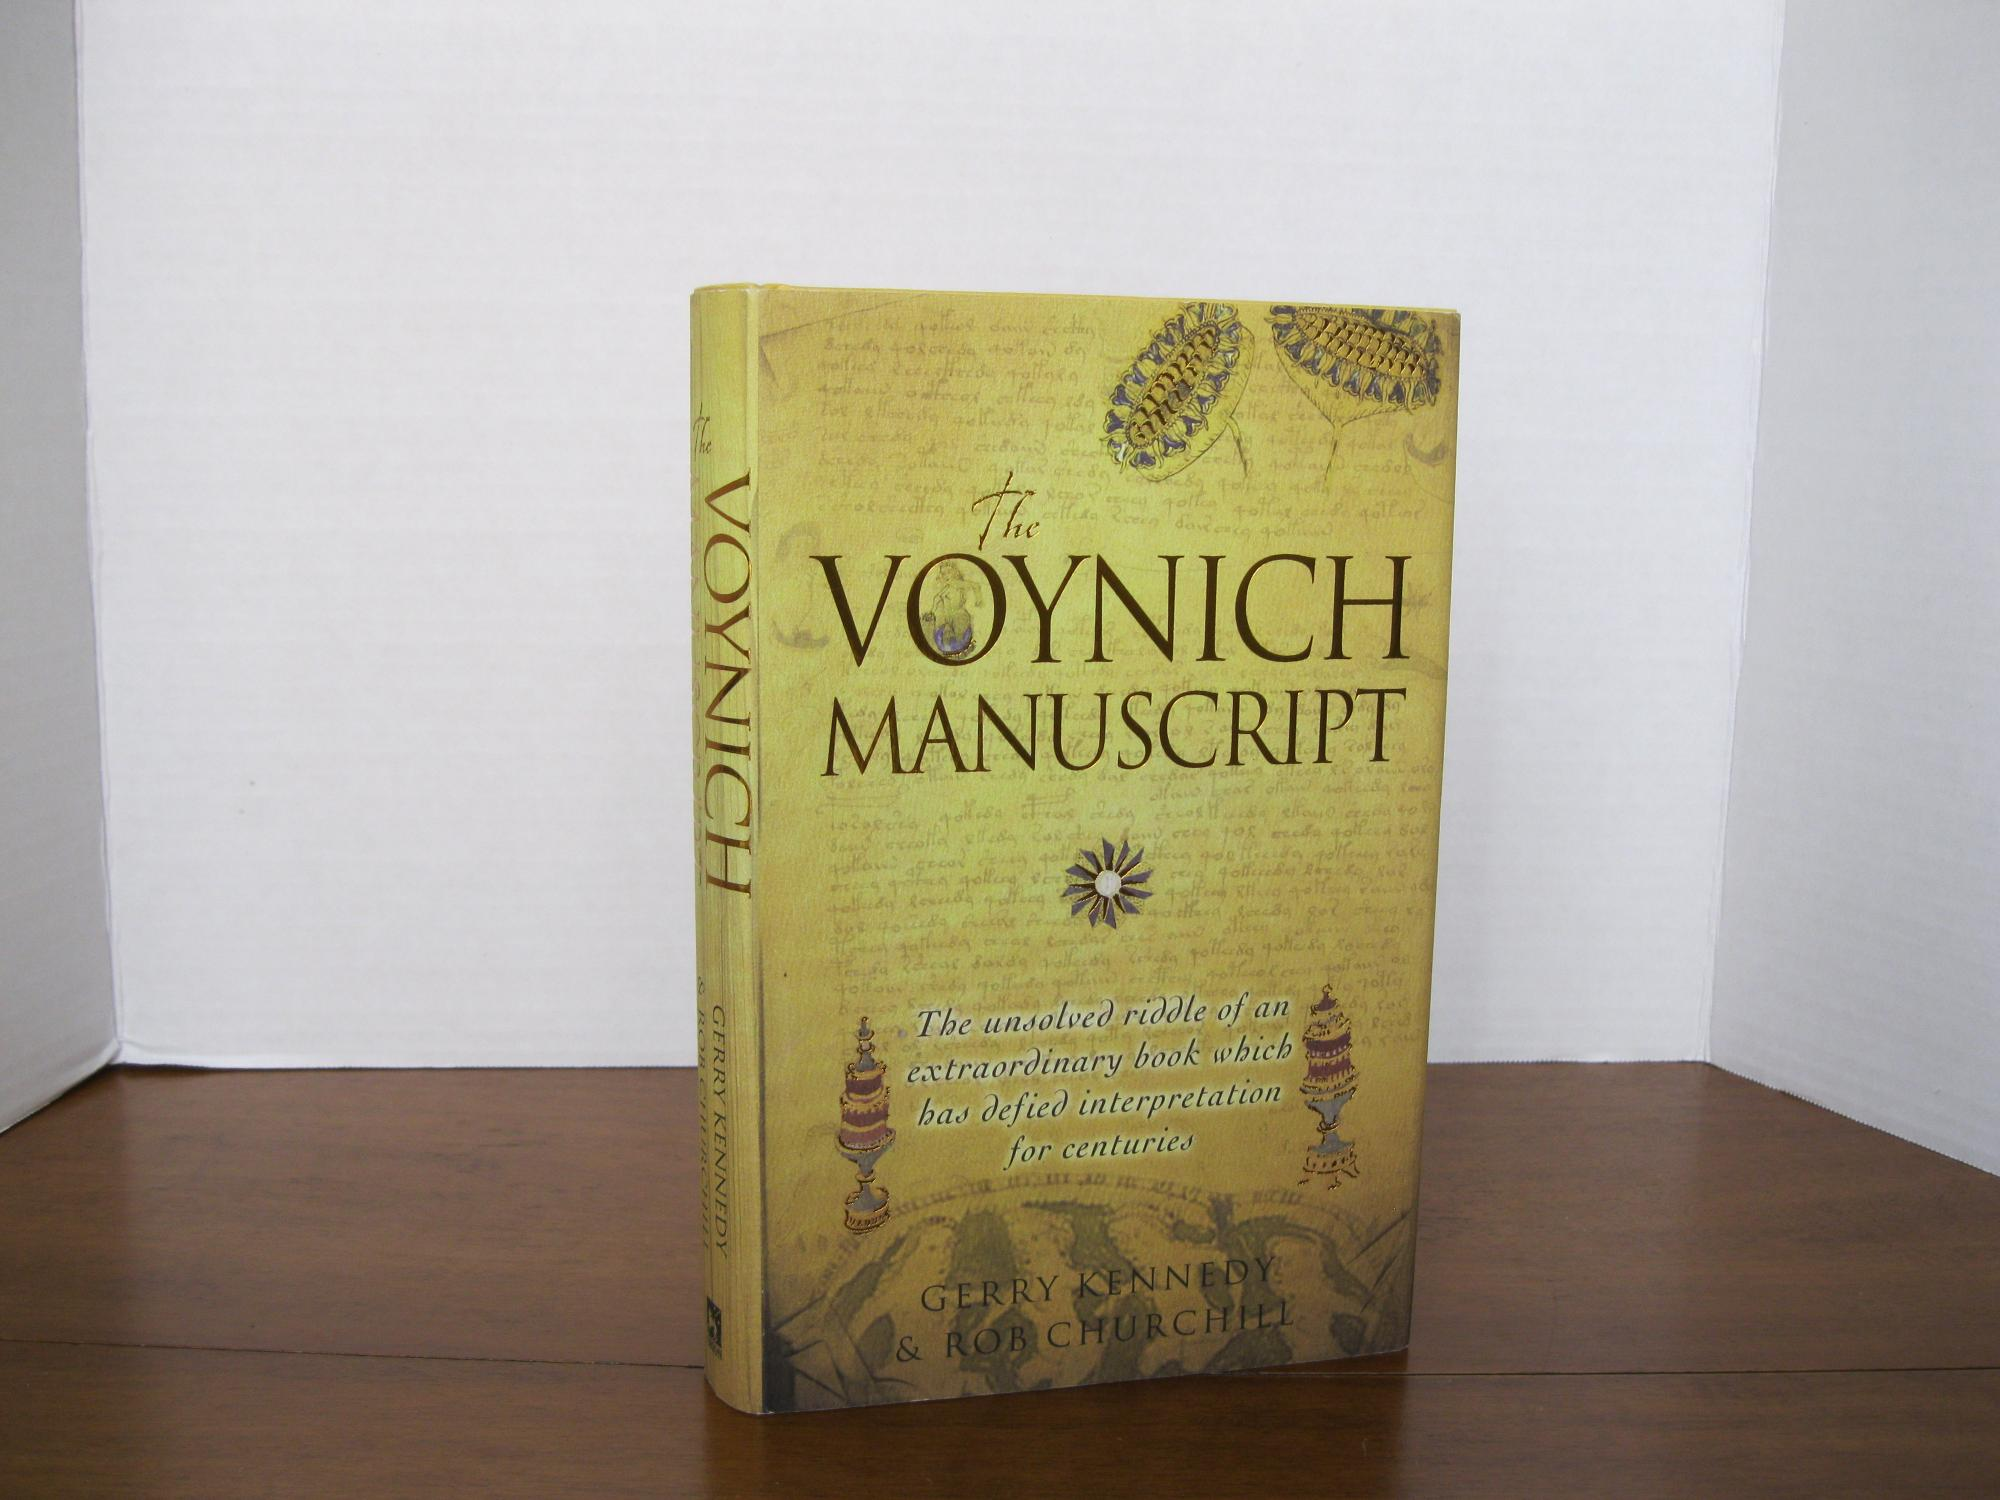 THE_VOYNICH_MANUSCRIPT:_THE_UNSOLVED_RIDDLE_OF_AN_EXTRAORDINARY_BOOK_WHICH_HAS_DEFIED_INTERPRETATION_FOR_CENTURIES_KENNEDY,_GERRY_&_ROB_CHURCHILL_[Fi